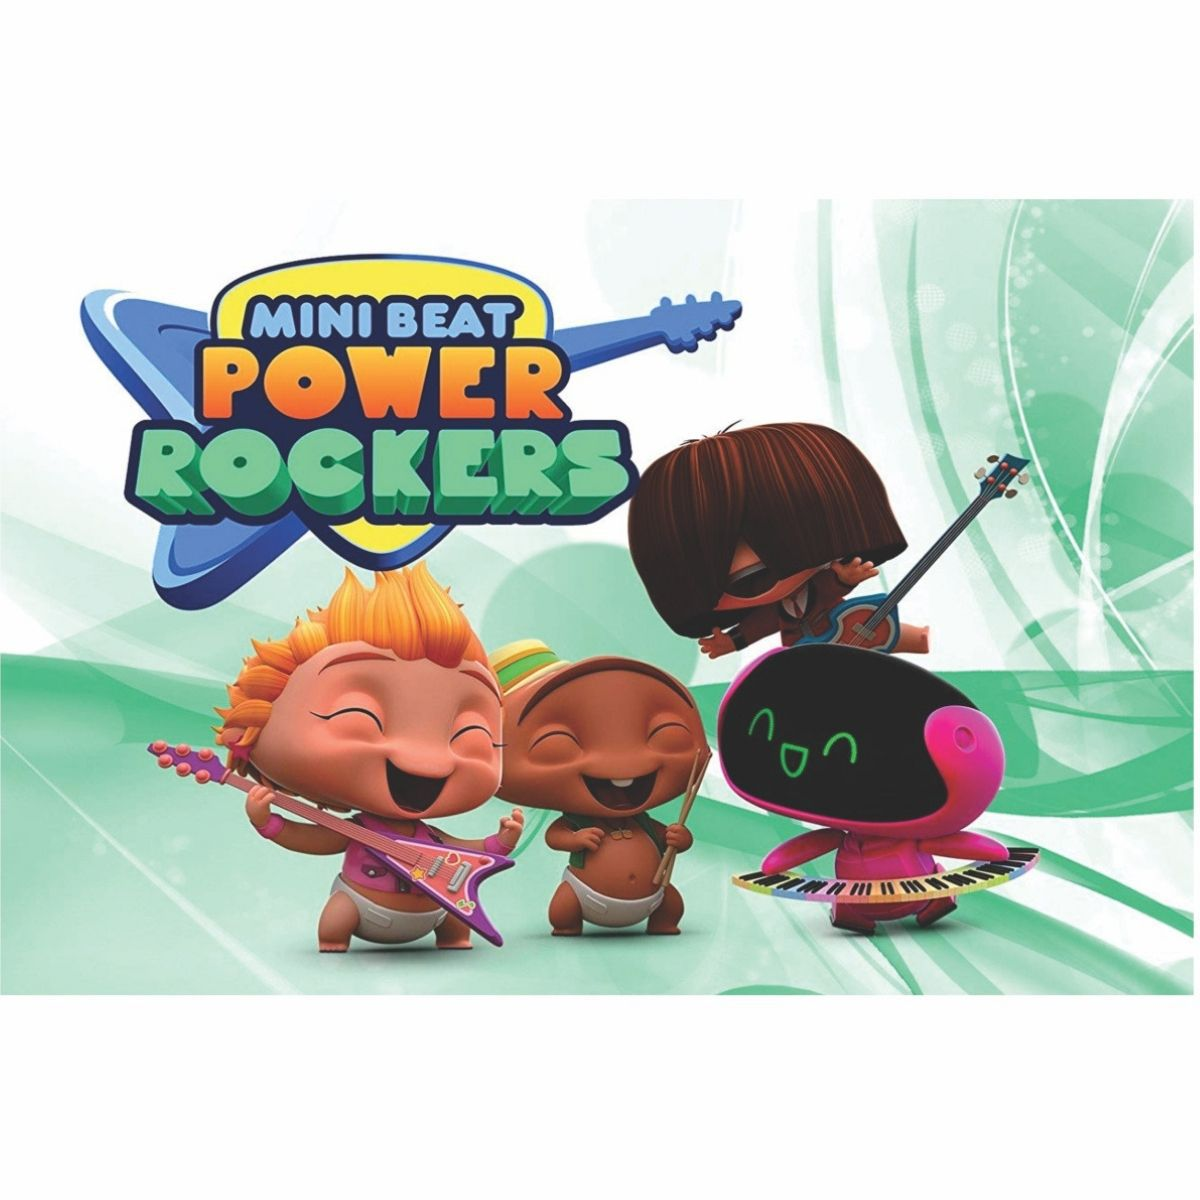 Painel de Festa Lona Mini Beat Power Rockers 2